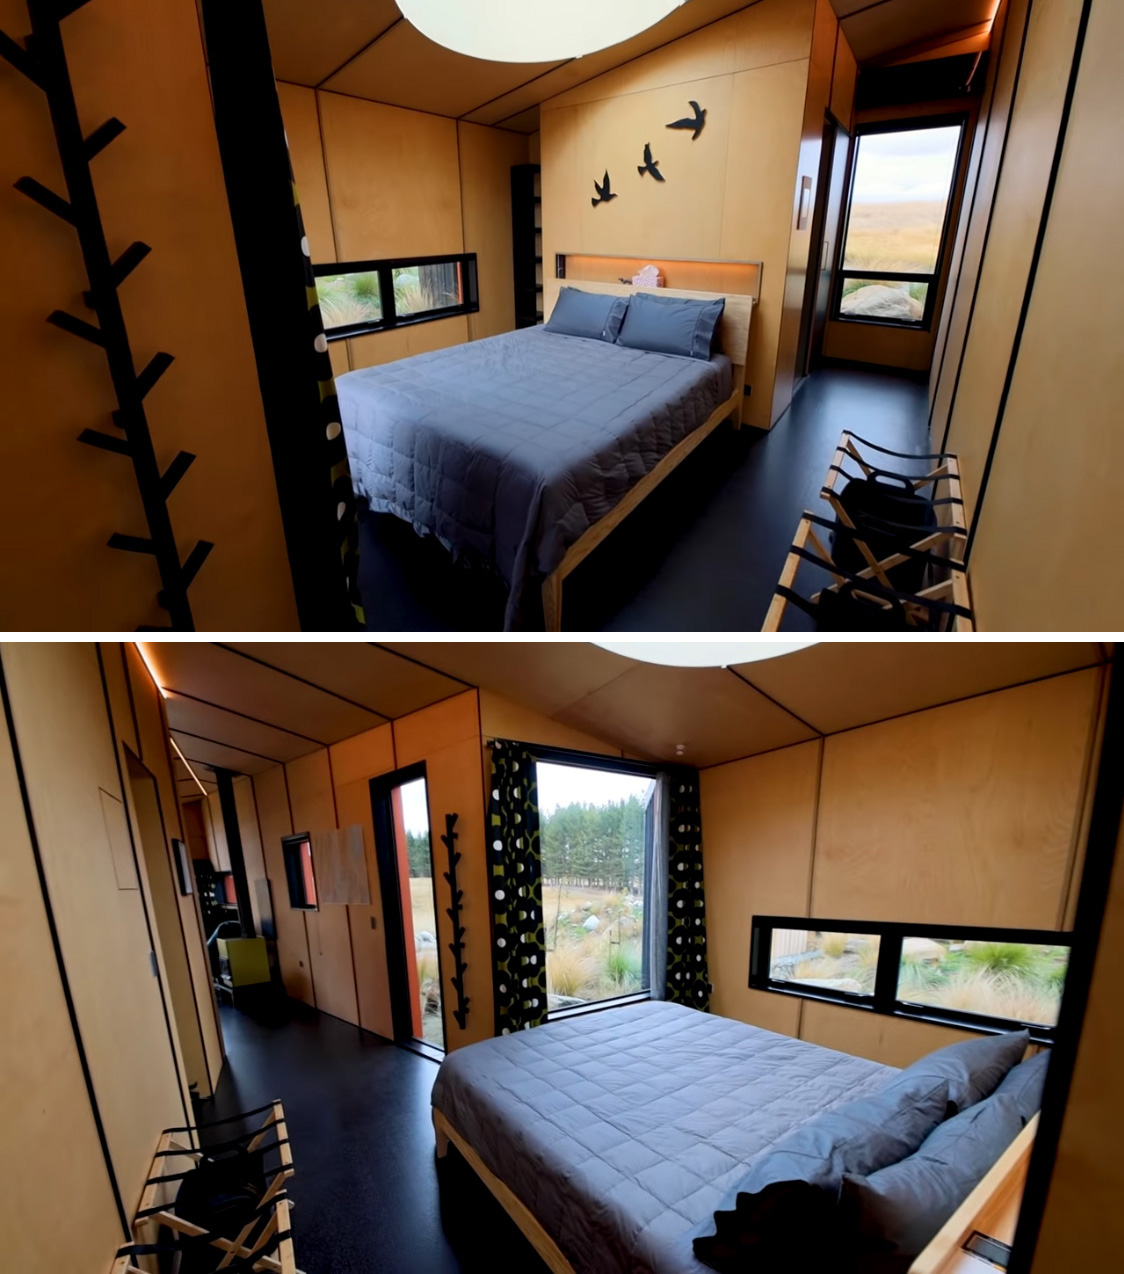 This bedroom is a small cabin includes a small recessed shelving niche above the headboard, ideal for a glass of wine or a book, while windows provide unobstructed views of the outdoors.